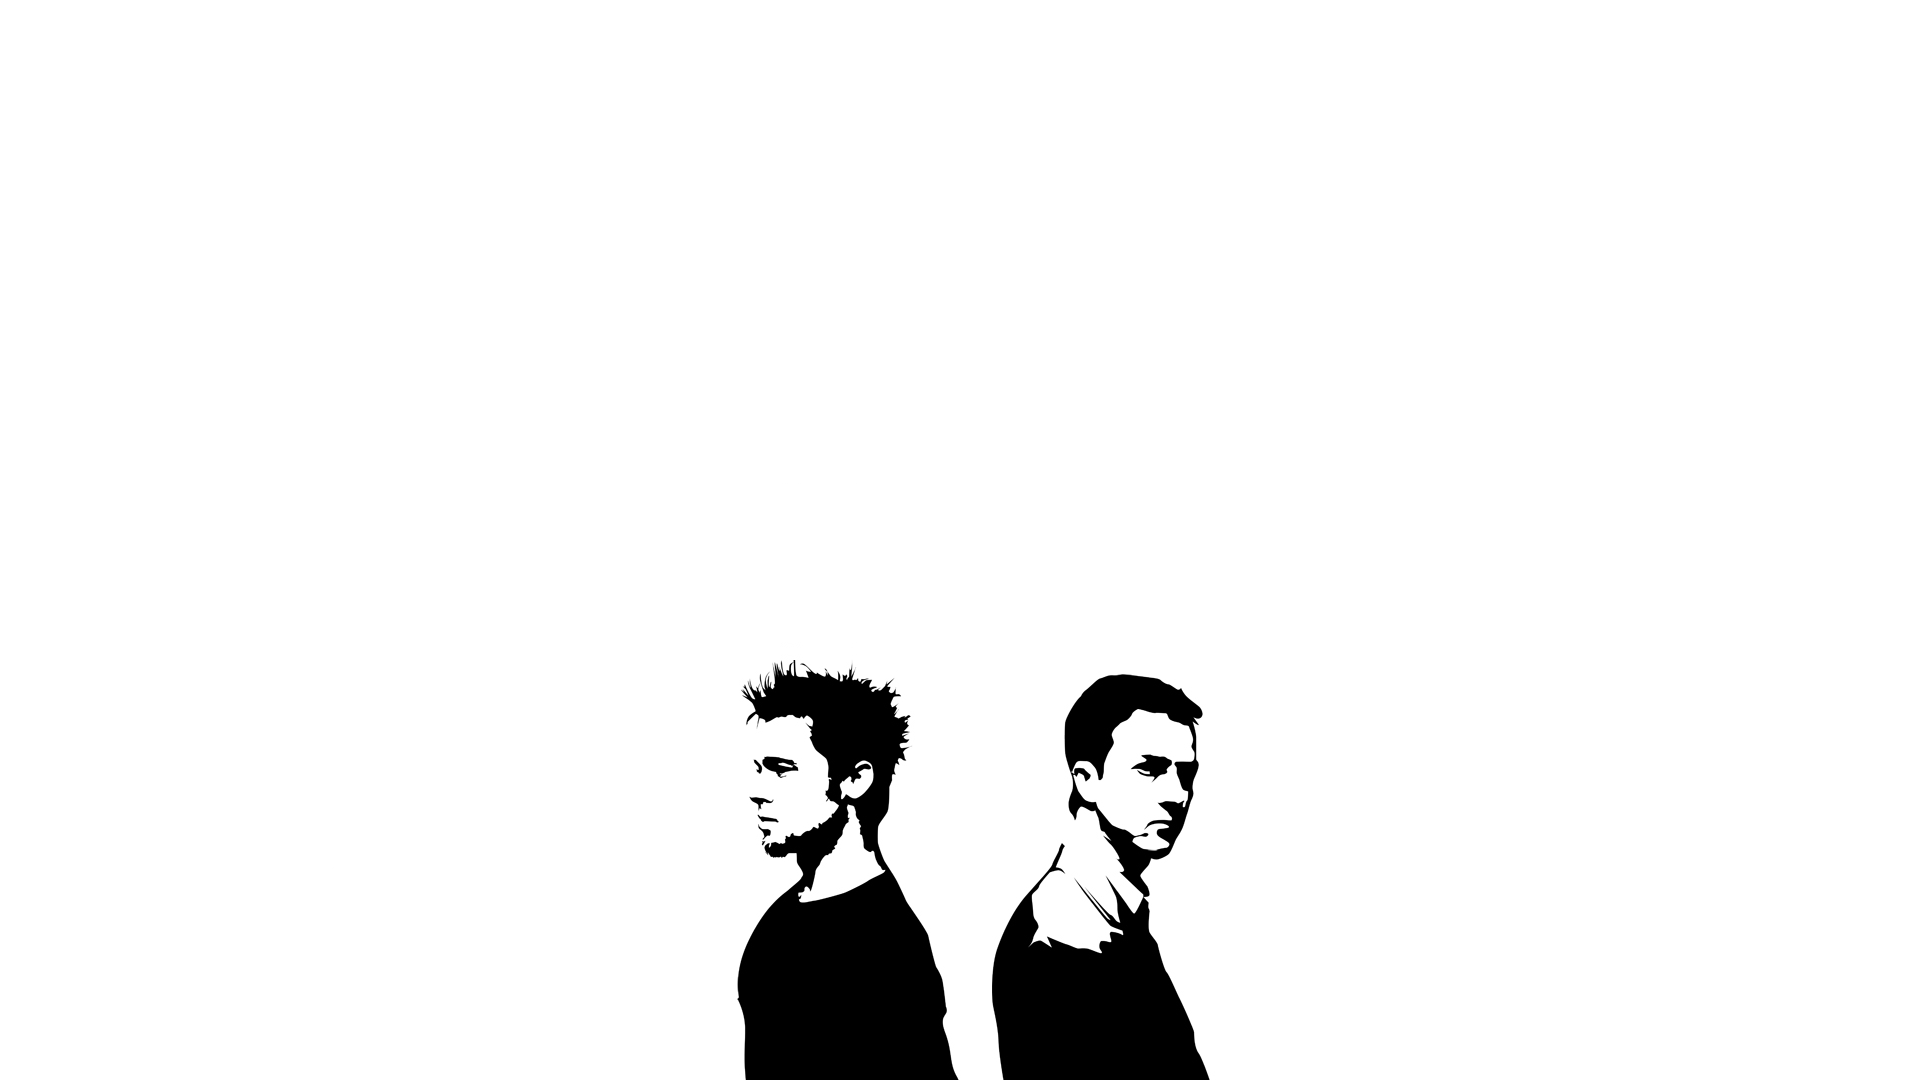 Fight-Club-1920x1080-Need-iPhone-S-Plus-Background-for-IPhoneSPlus-Follow-iPho-wallpaper-wp3805274